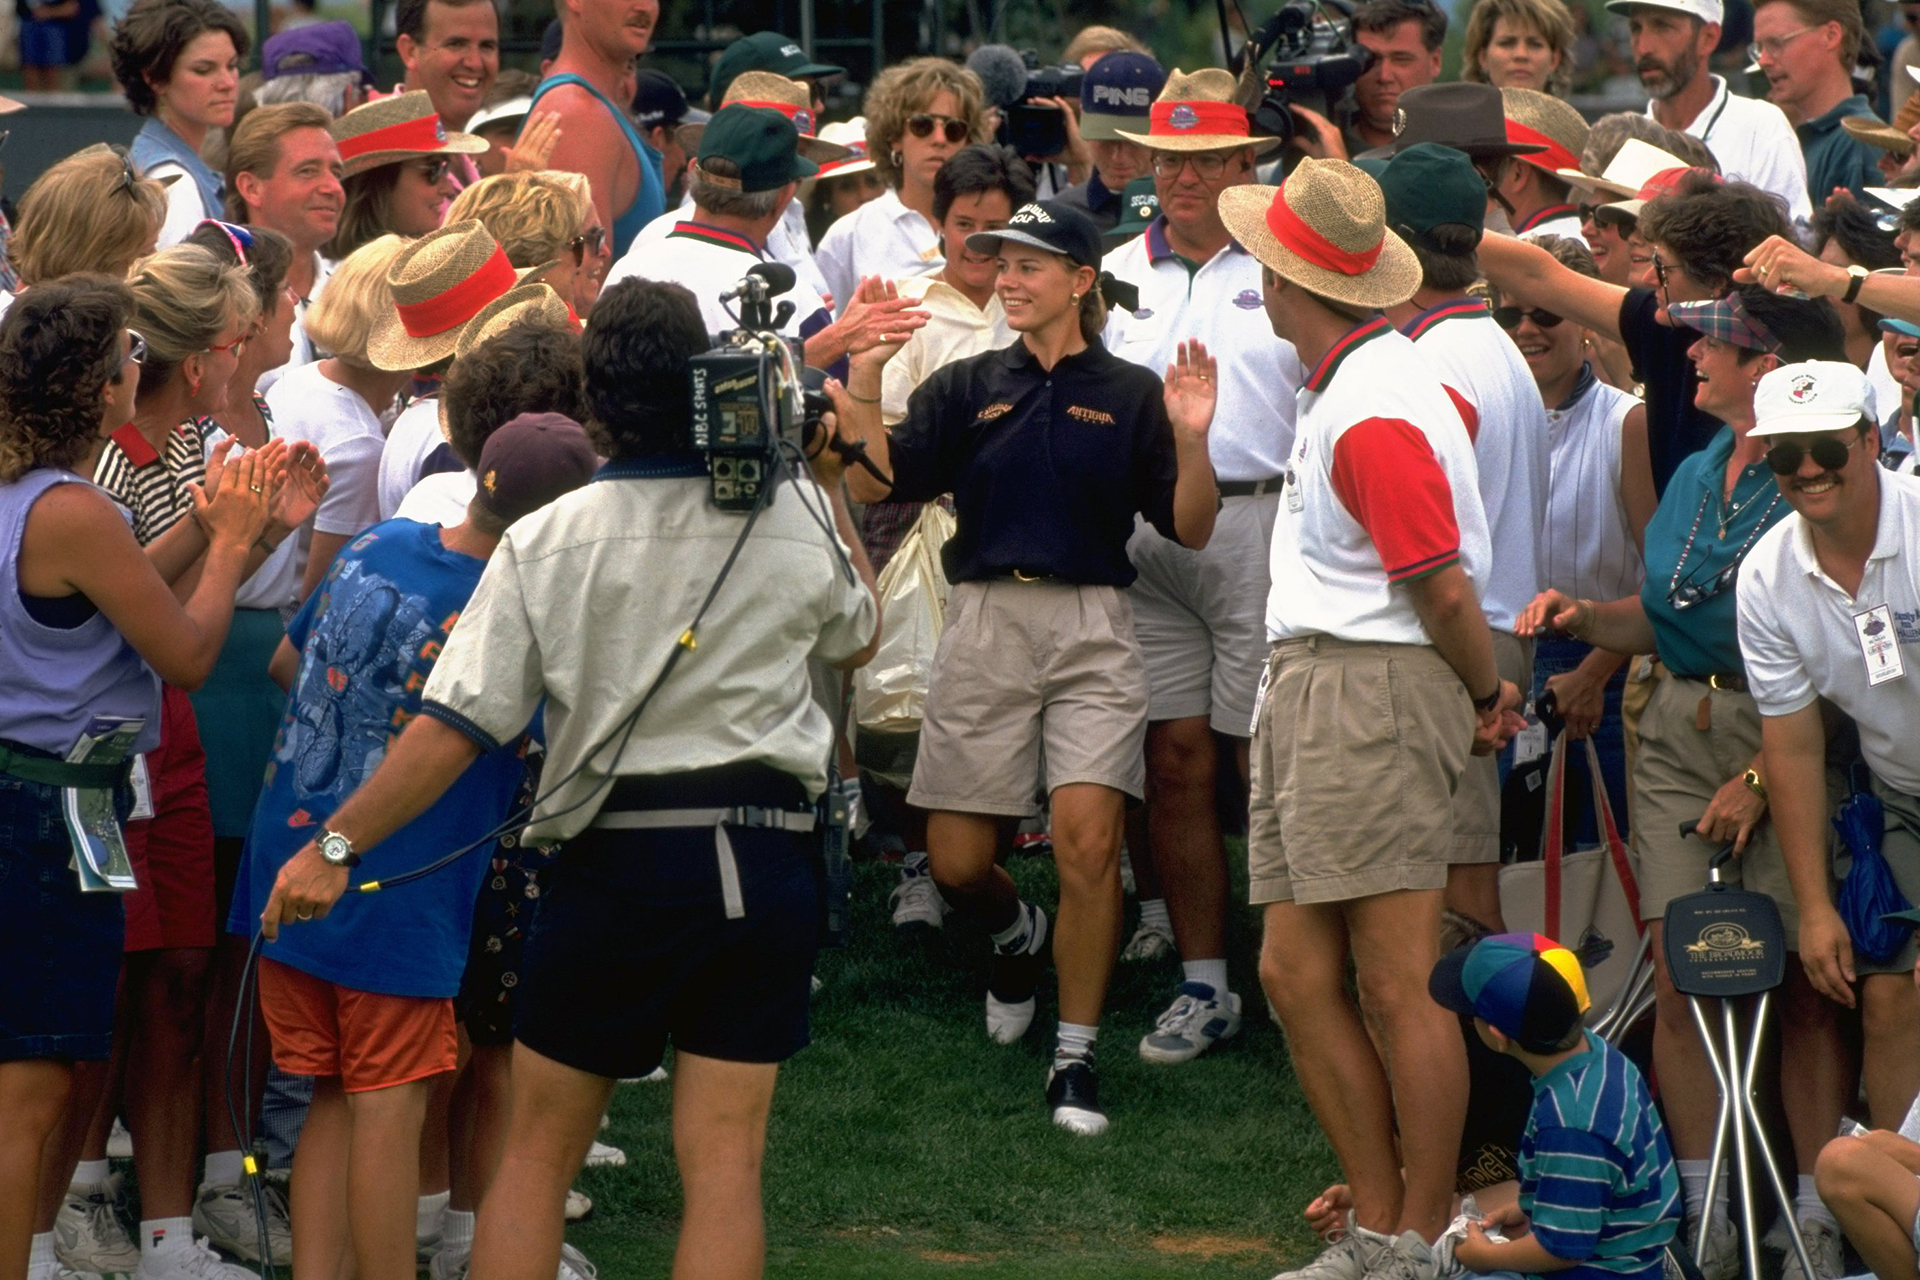 Golf: US Women's Open: Annika Sorenstam victorious with fans after winning tournament on Sunday at The Broadmoor GC. View of NBC Sports media camera filming. Colorado Springs, CO 7/16/1995 CREDIT: Robert Beck (Photo by Robert Beck /Sports Illustrated/Getty Images) (Set Number: X48700 TK3 )